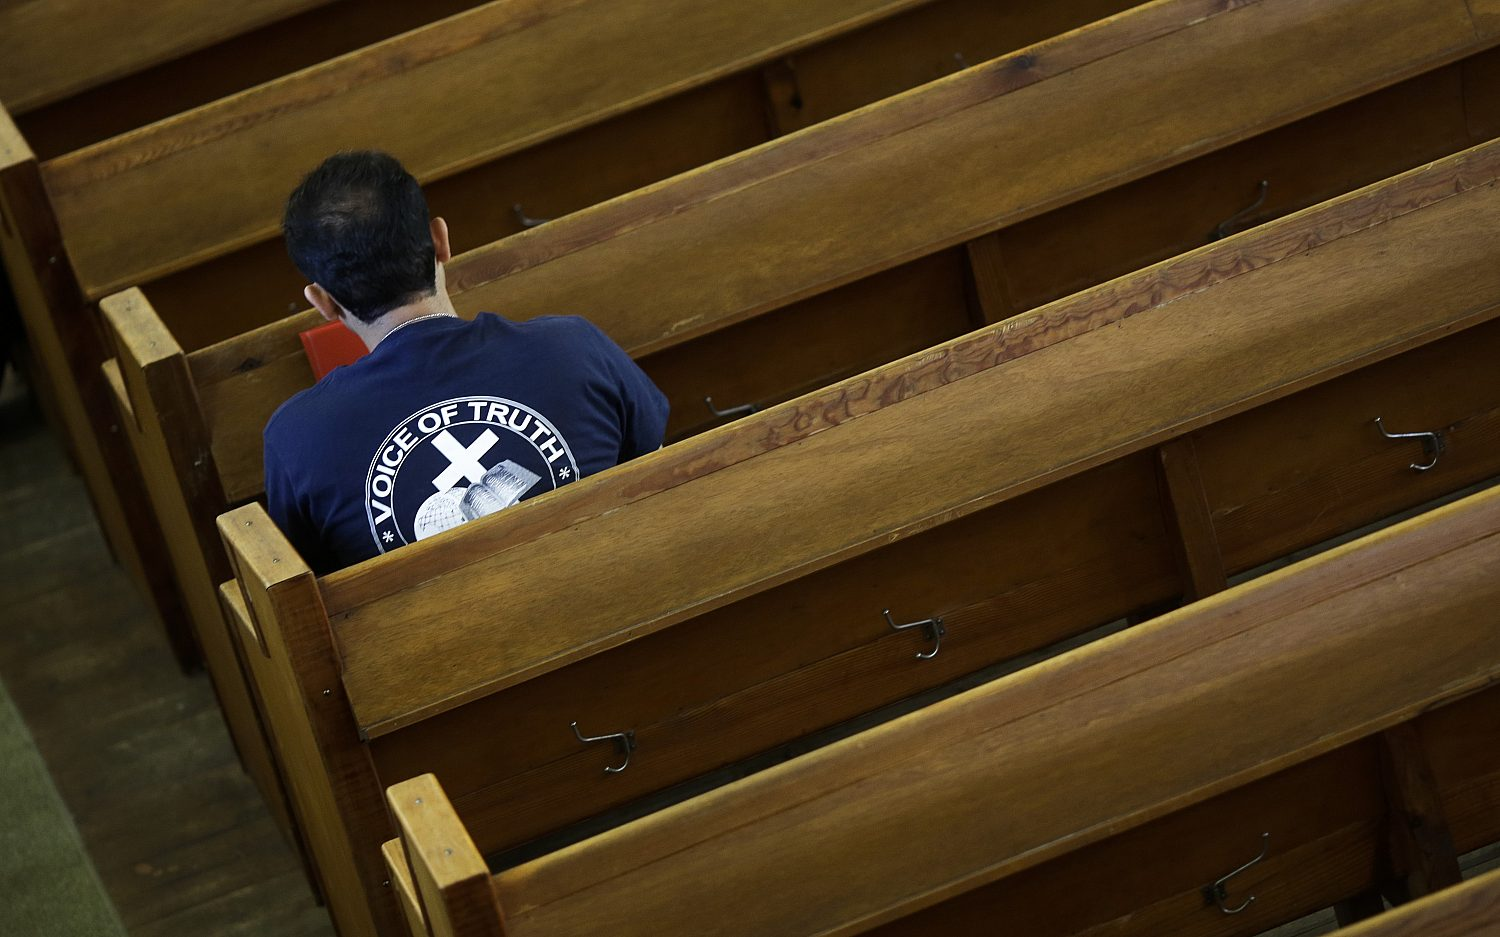 Danger follows Christian refugees to Germany